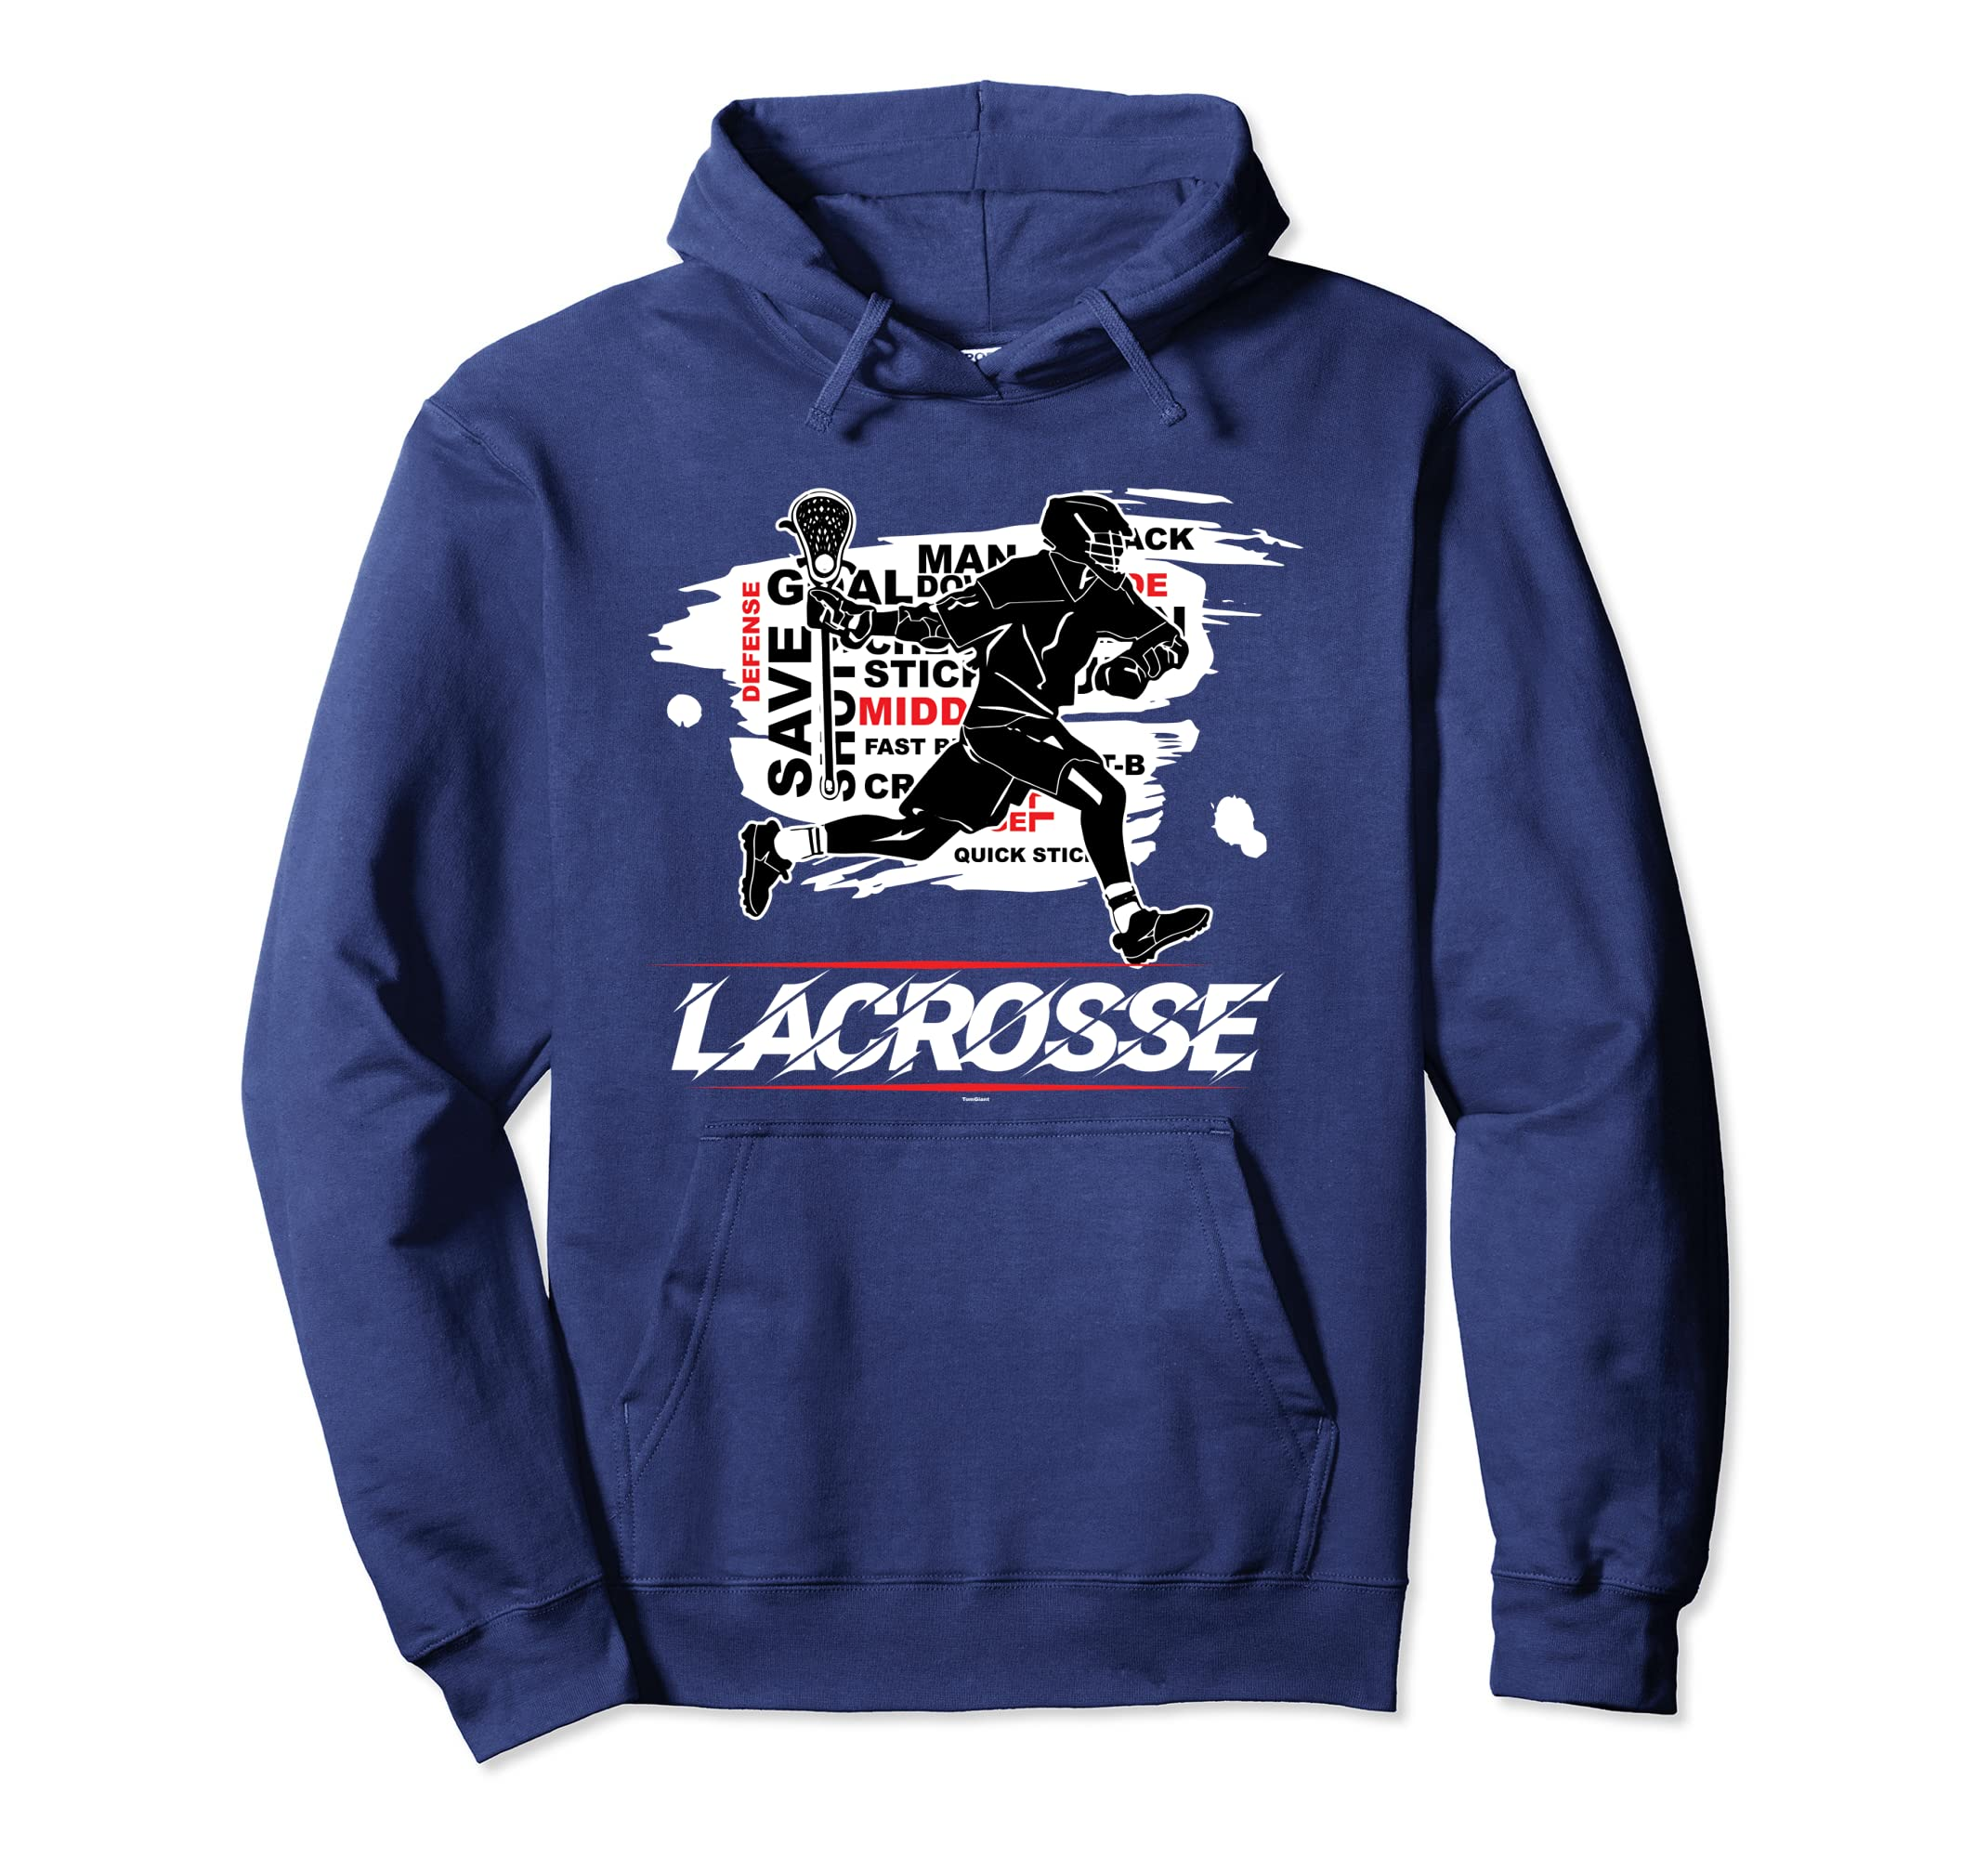 b9c4dab5 ... Awesome Lacrosse Lax Sticks Red Black White Hoodie Pullover-Bawle ...